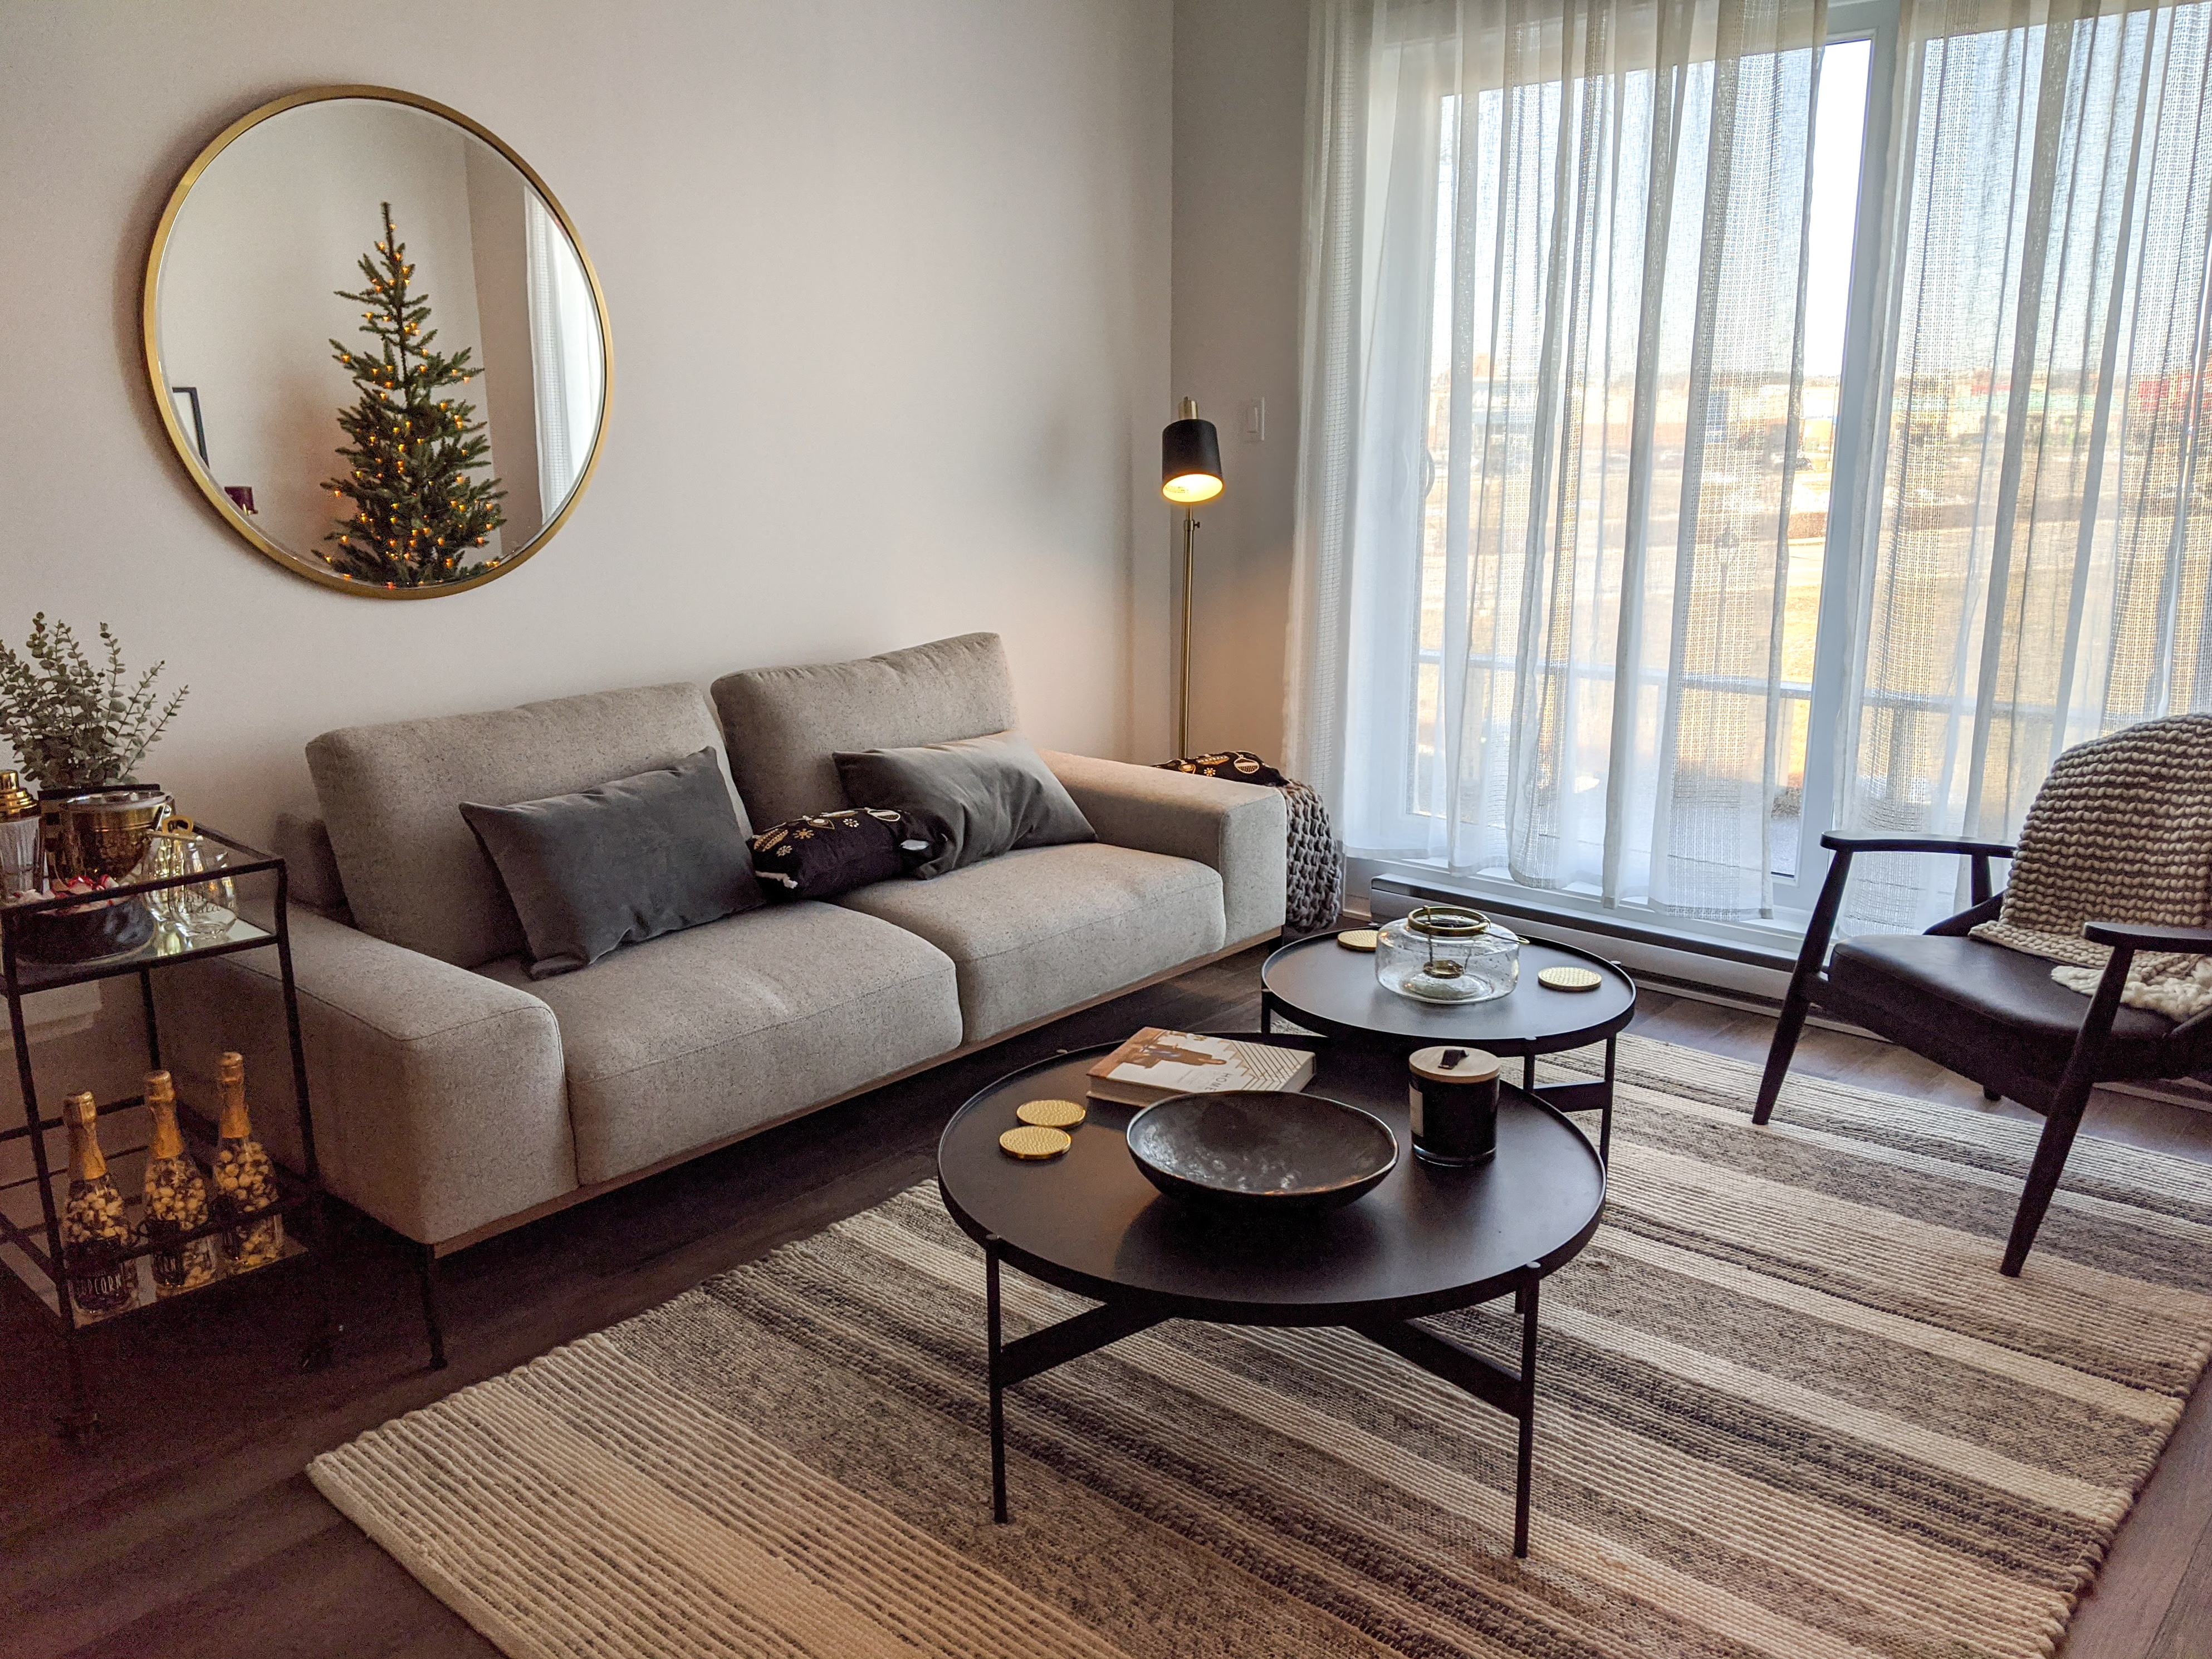 How To Make Your Rental Property More Appealing To Customers